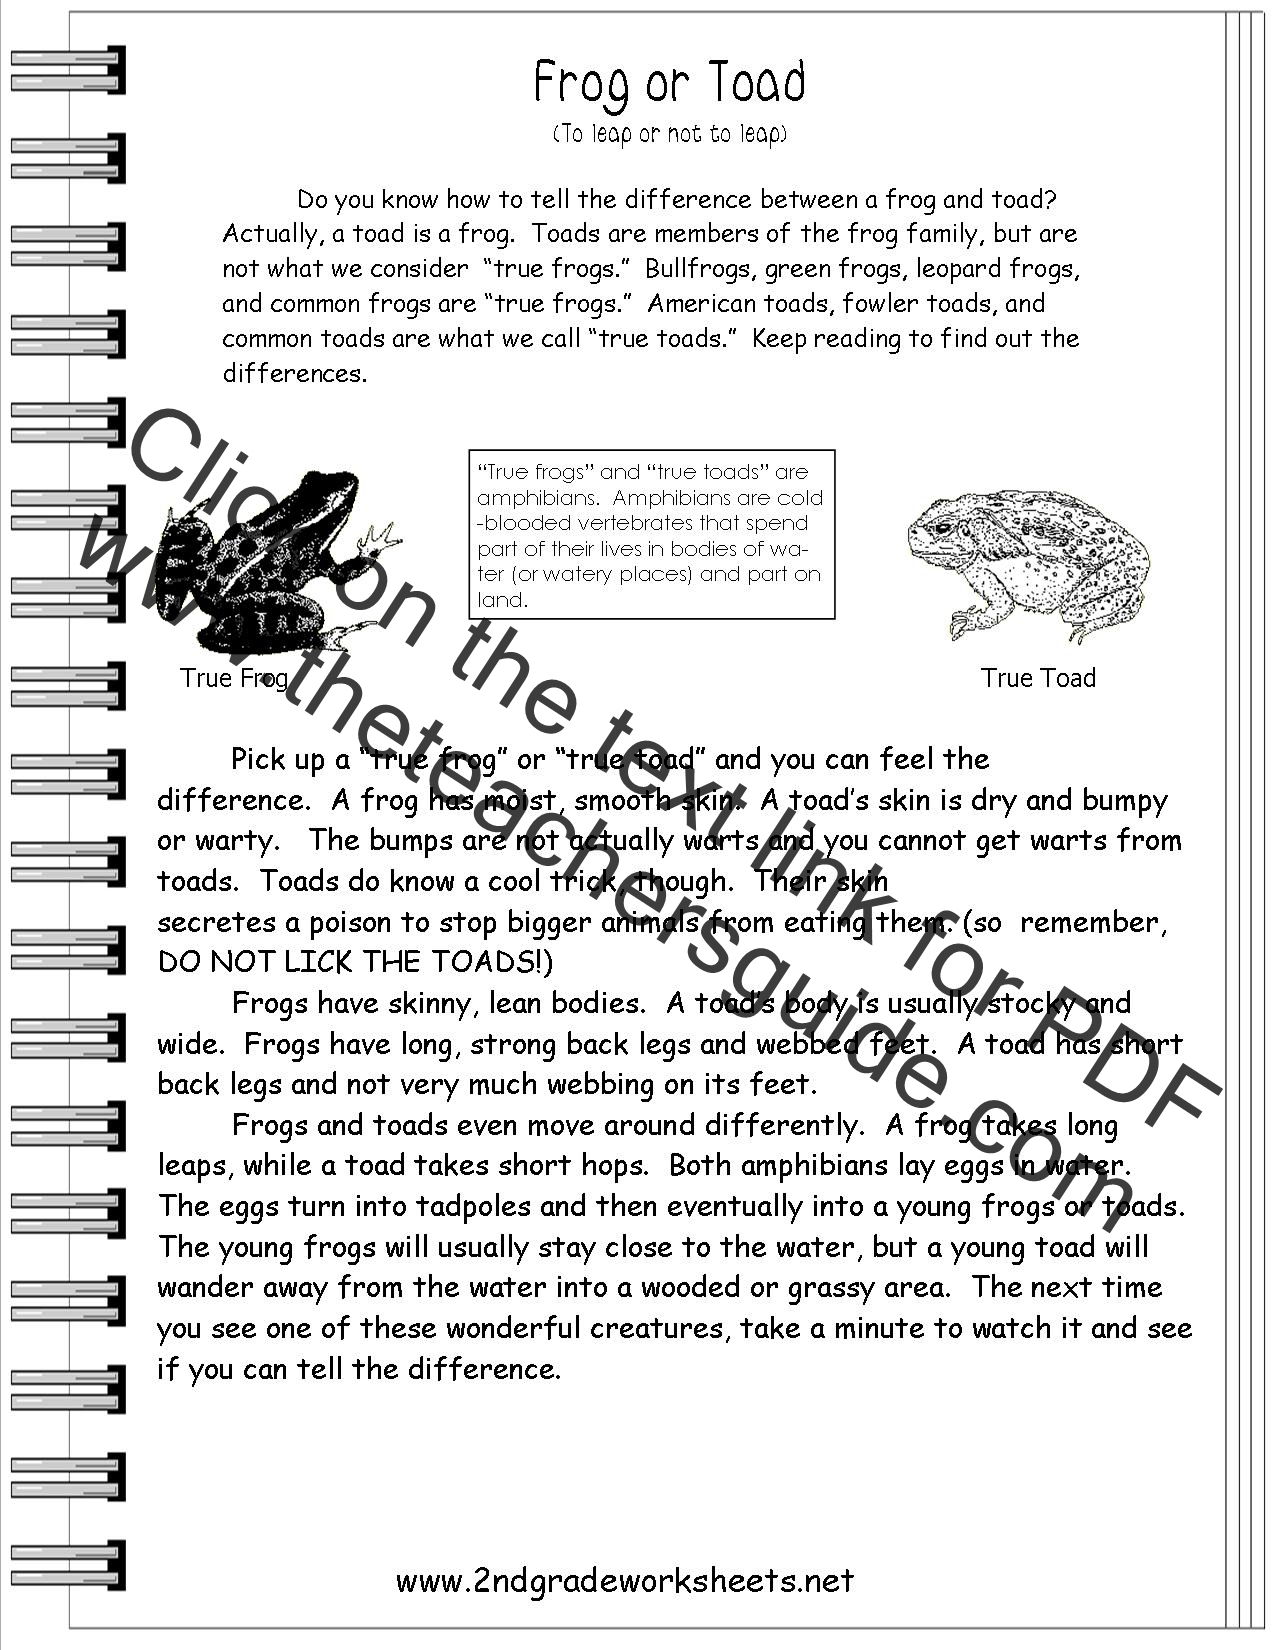 Worksheet Fiction And Nonfiction Worksheets Worksheet Fun Worksheet Study Site